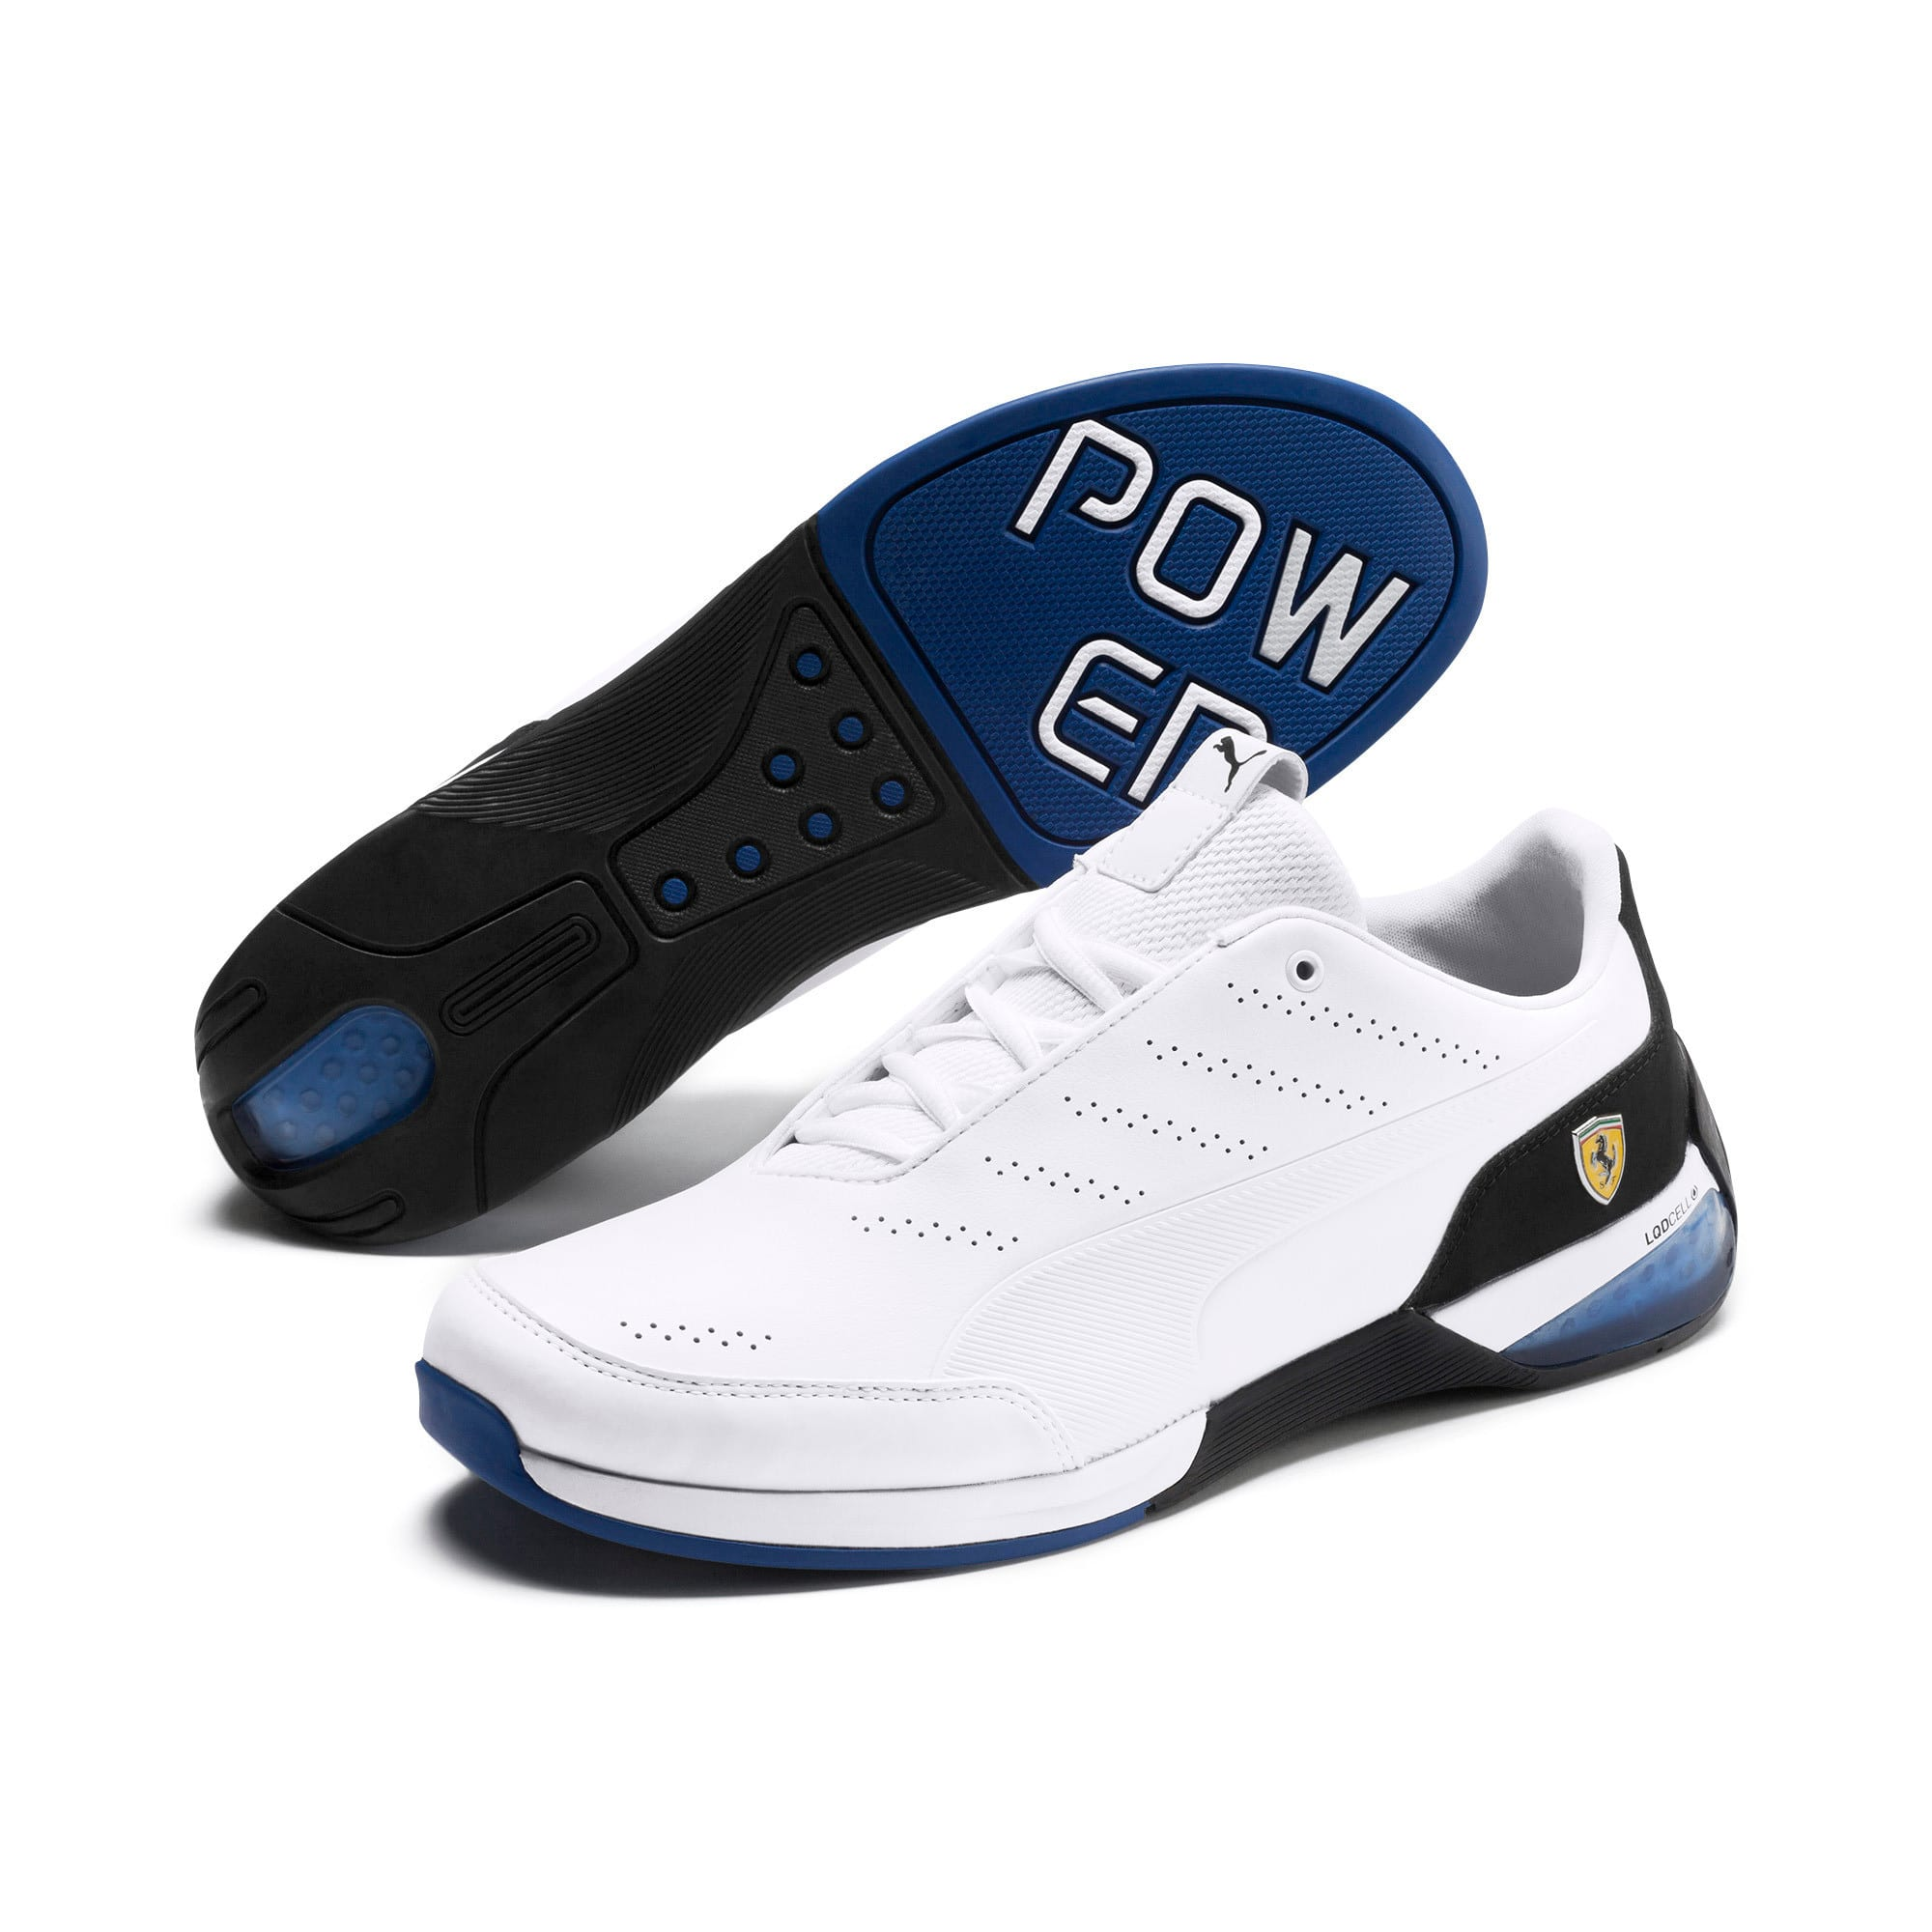 Thumbnail 4 of Ferrari Kart Cat X Trainers, Puma White-Puma Black, medium-IND